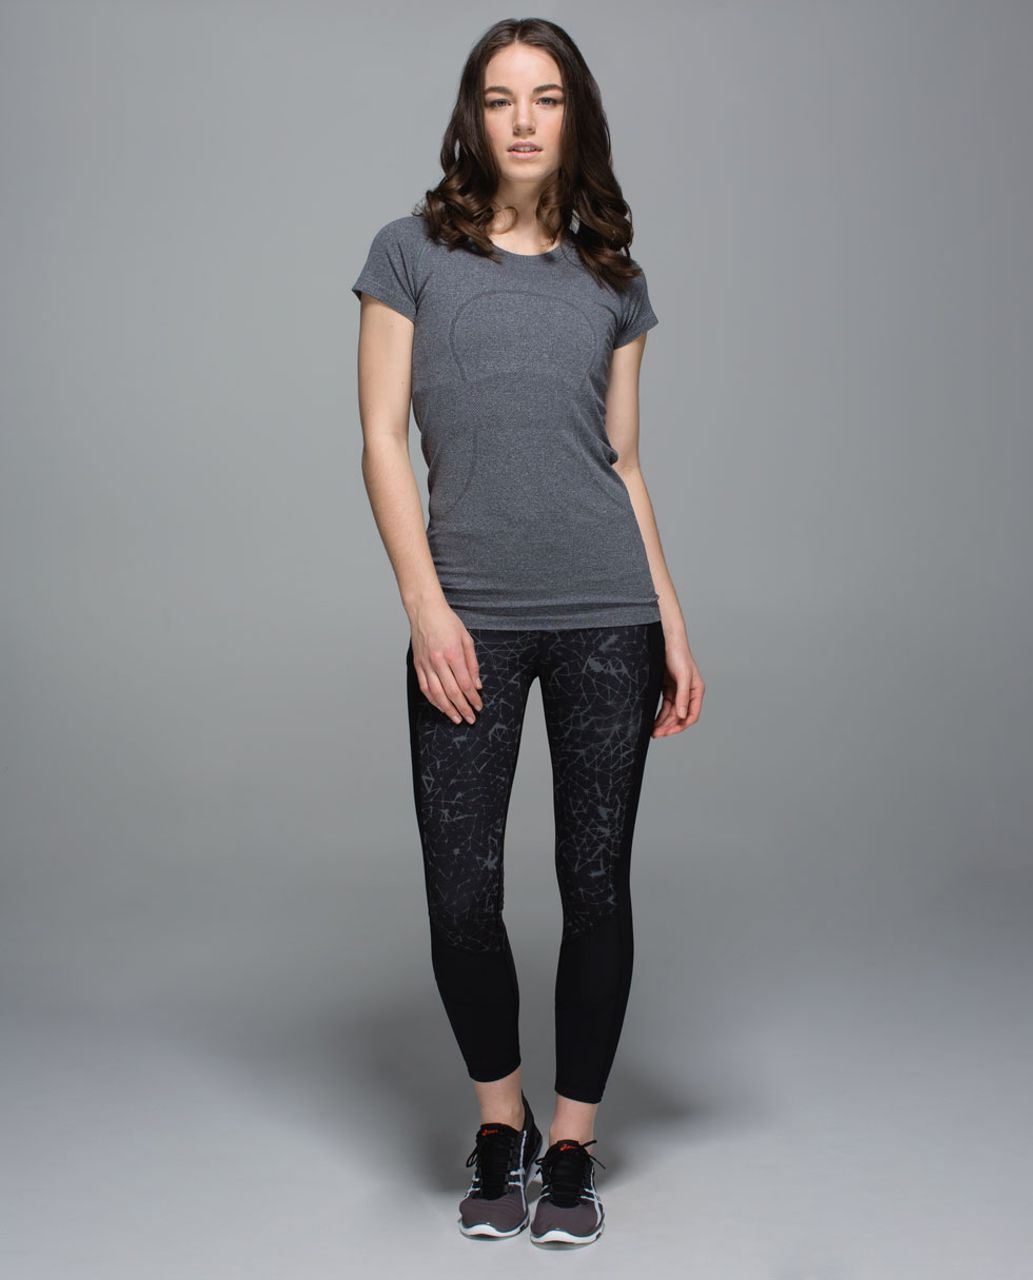 Lululemon Trail Bound 7/8 Tight *Full-On Luxtreme - Star Crushed Coal Black / Black